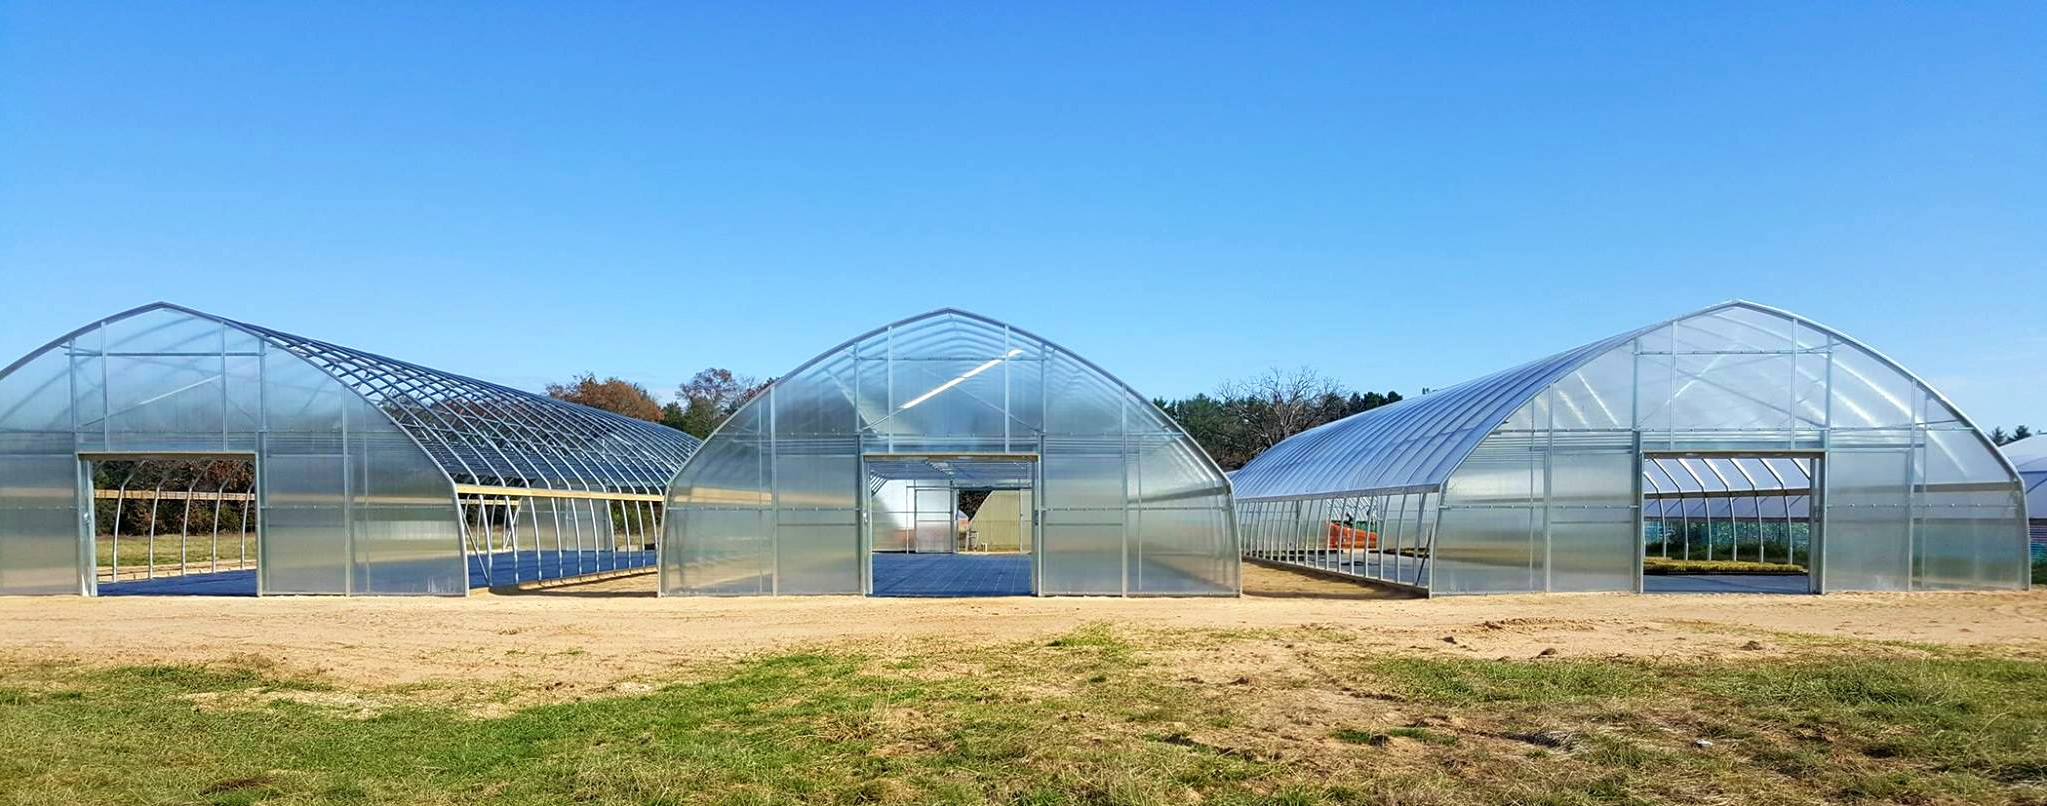 Prairie Nursery Grows Important Native Plants in its ATI Greenhouses | Commercial Greerhouse Manufacturer